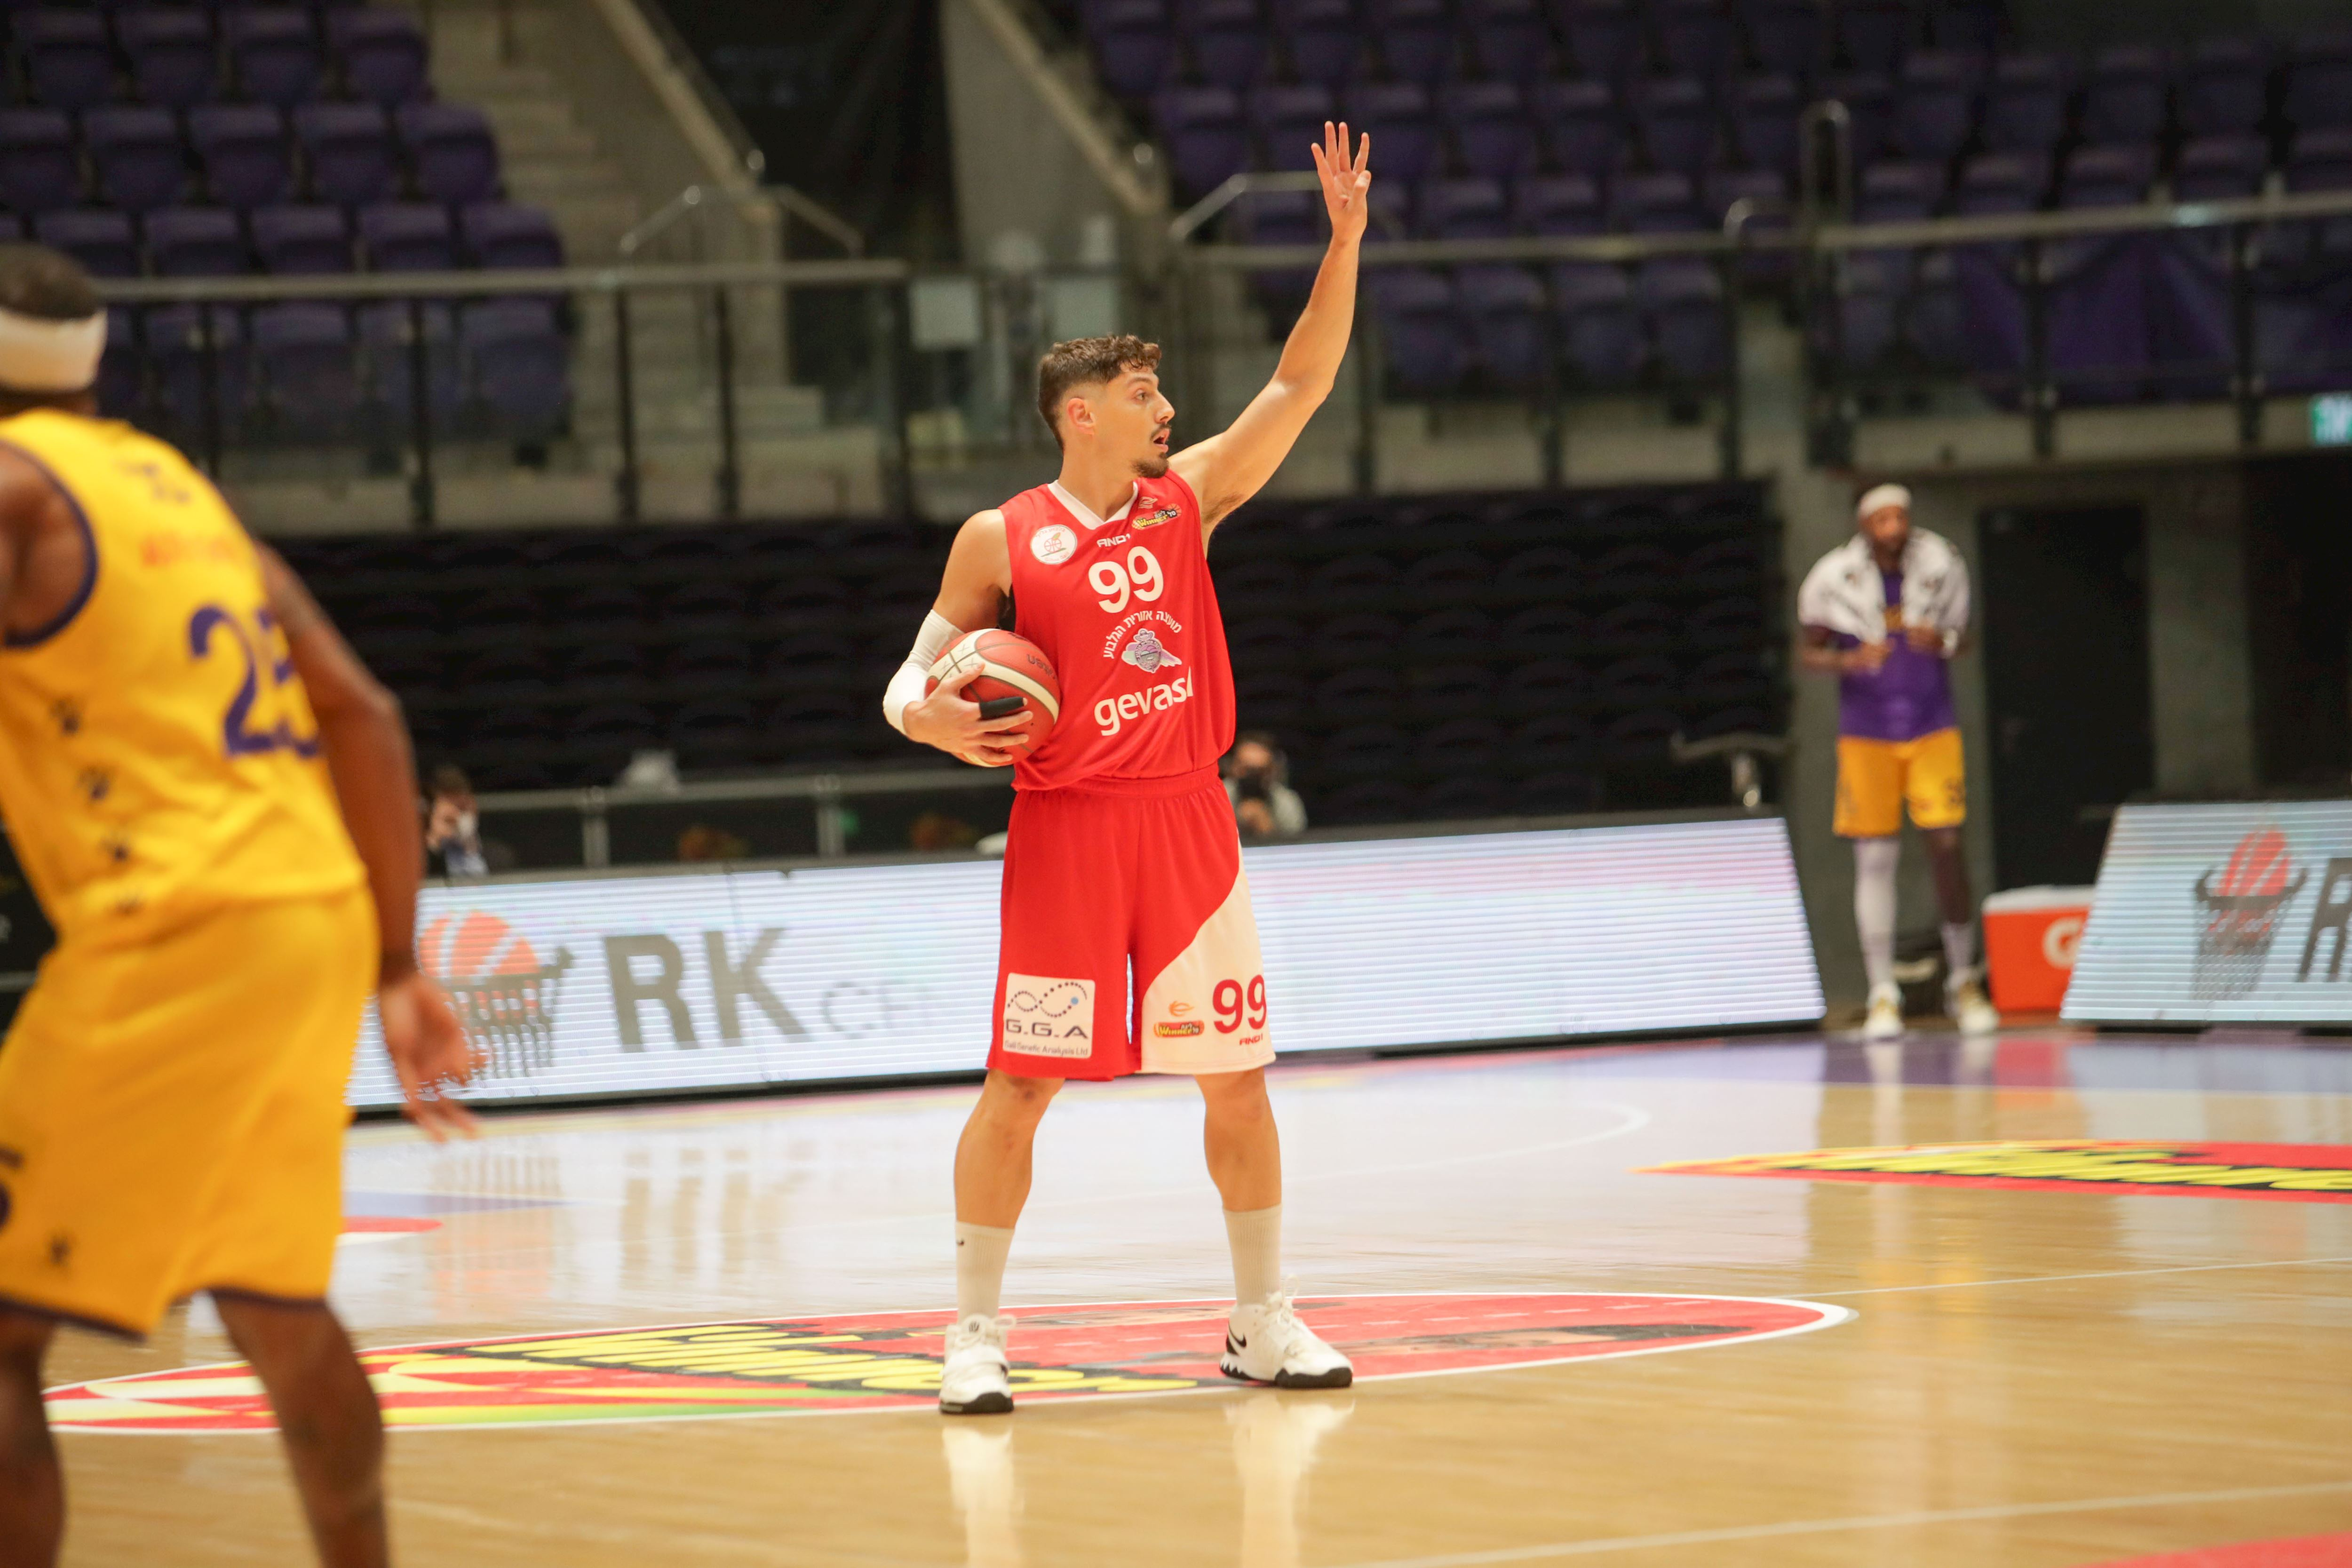 Day 5: Hapoel Holon - Gilboa/Galil 81:88